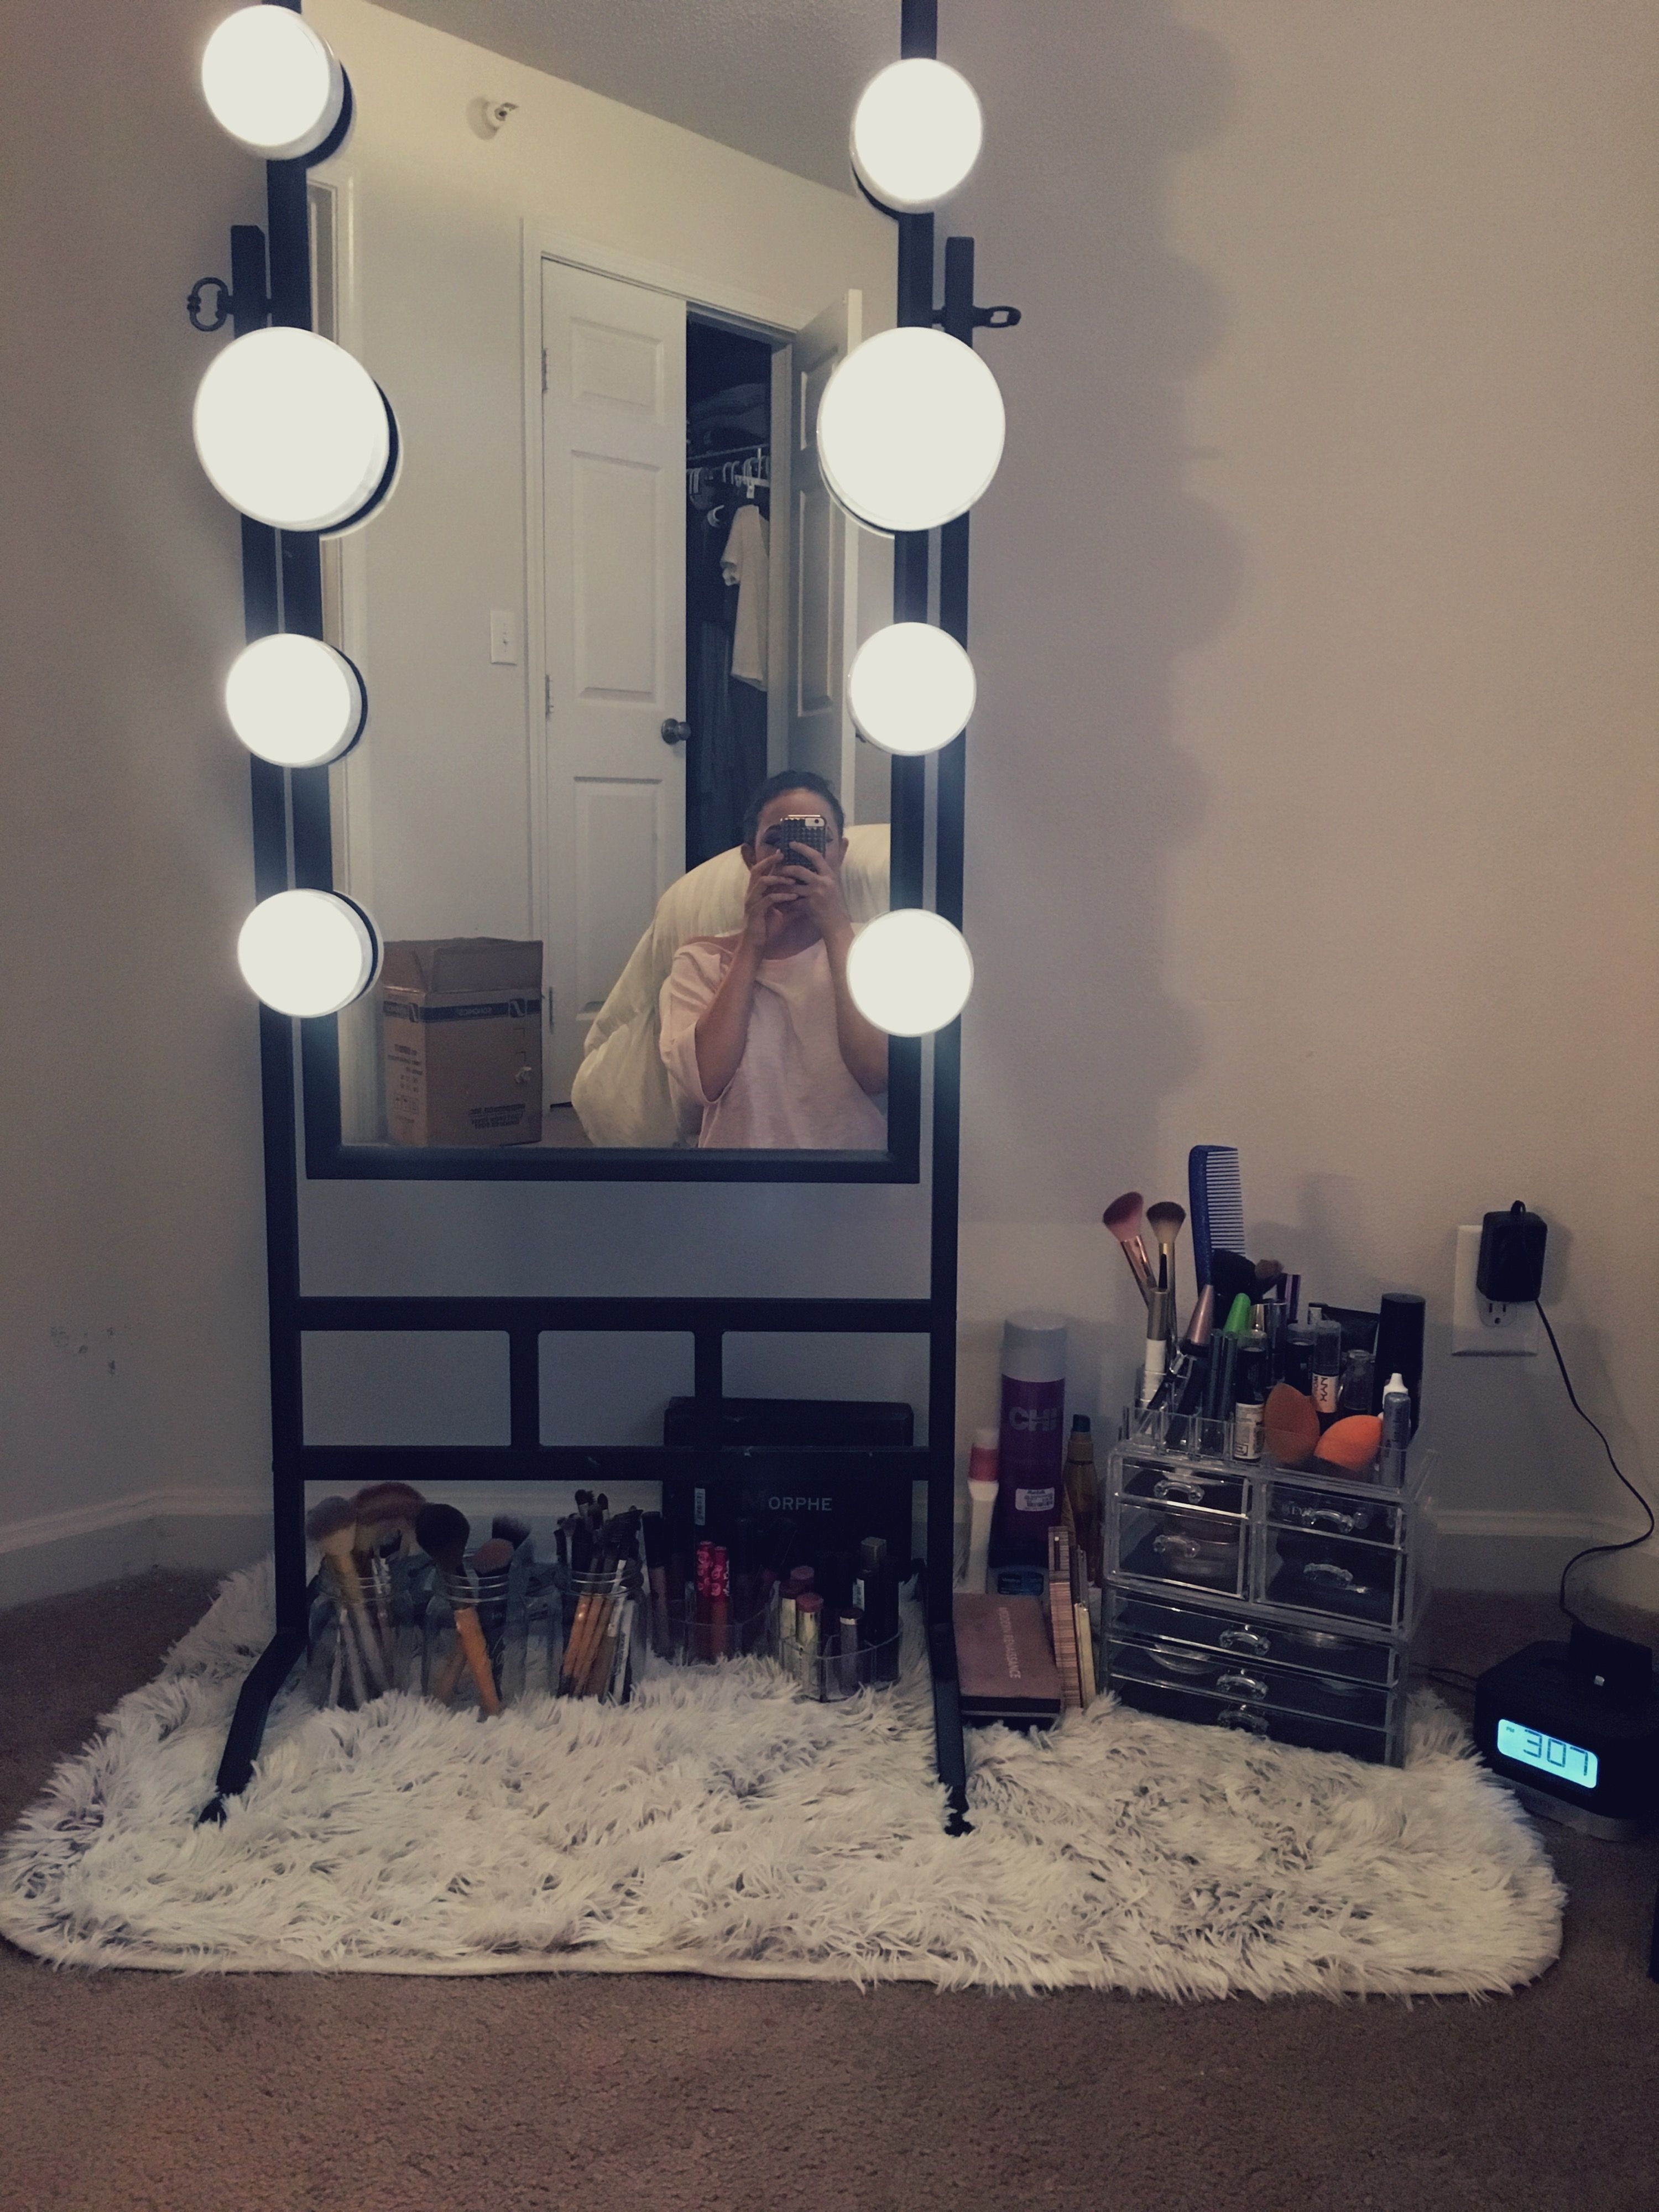 Vanity Idea For Those Who Like To Sit On The Floor When Doing Their Makeup Remodel Bedroom Small Bedroom Decorating Ideas Diy Kids Bedroom Remodel